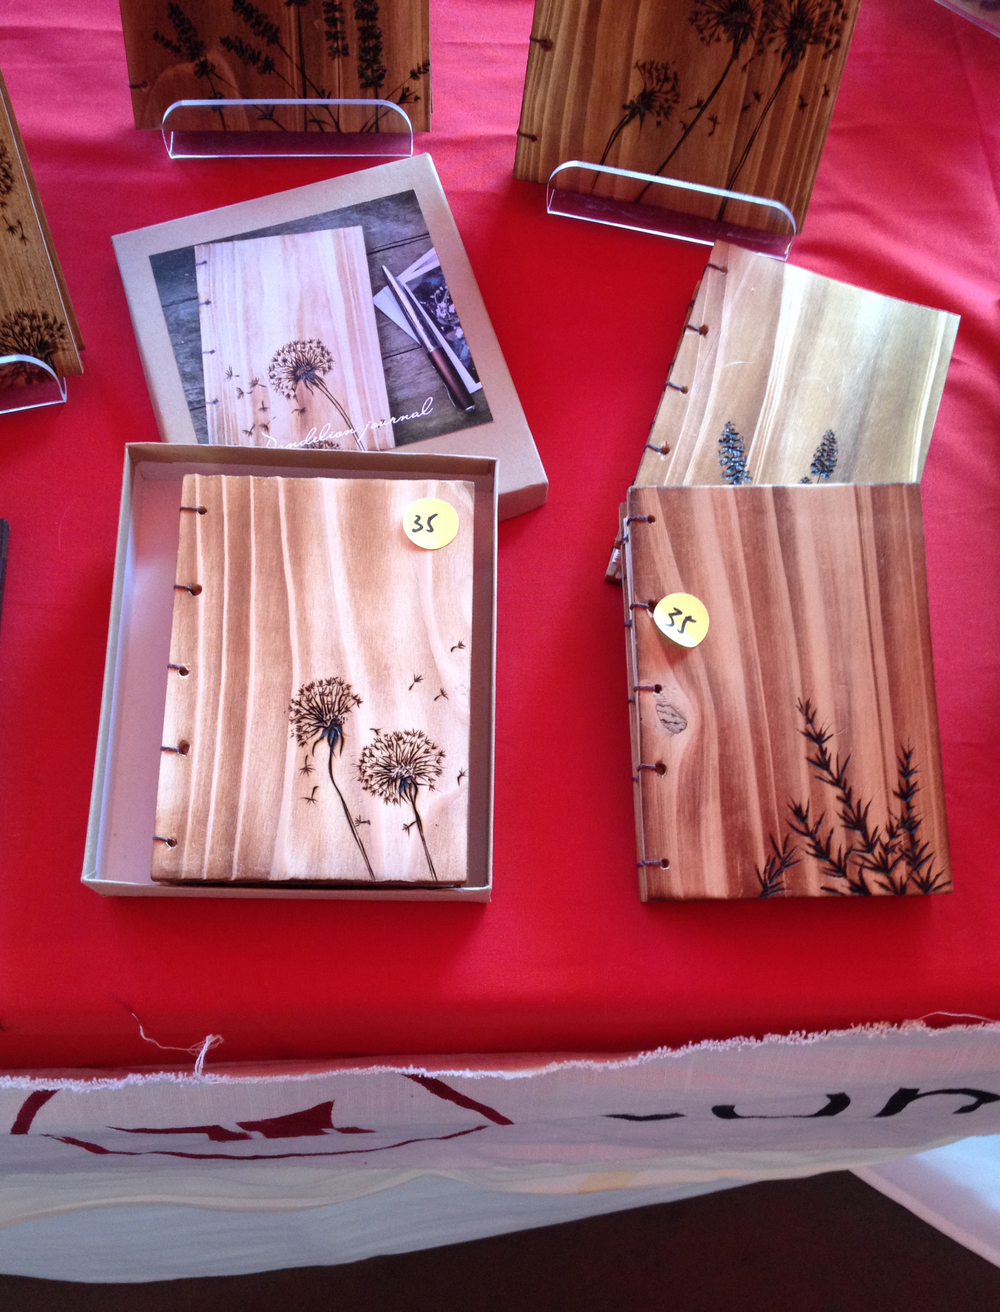 I fell in love with these handmade wood burned journals by M-Squarepress. The maker was so sweet.